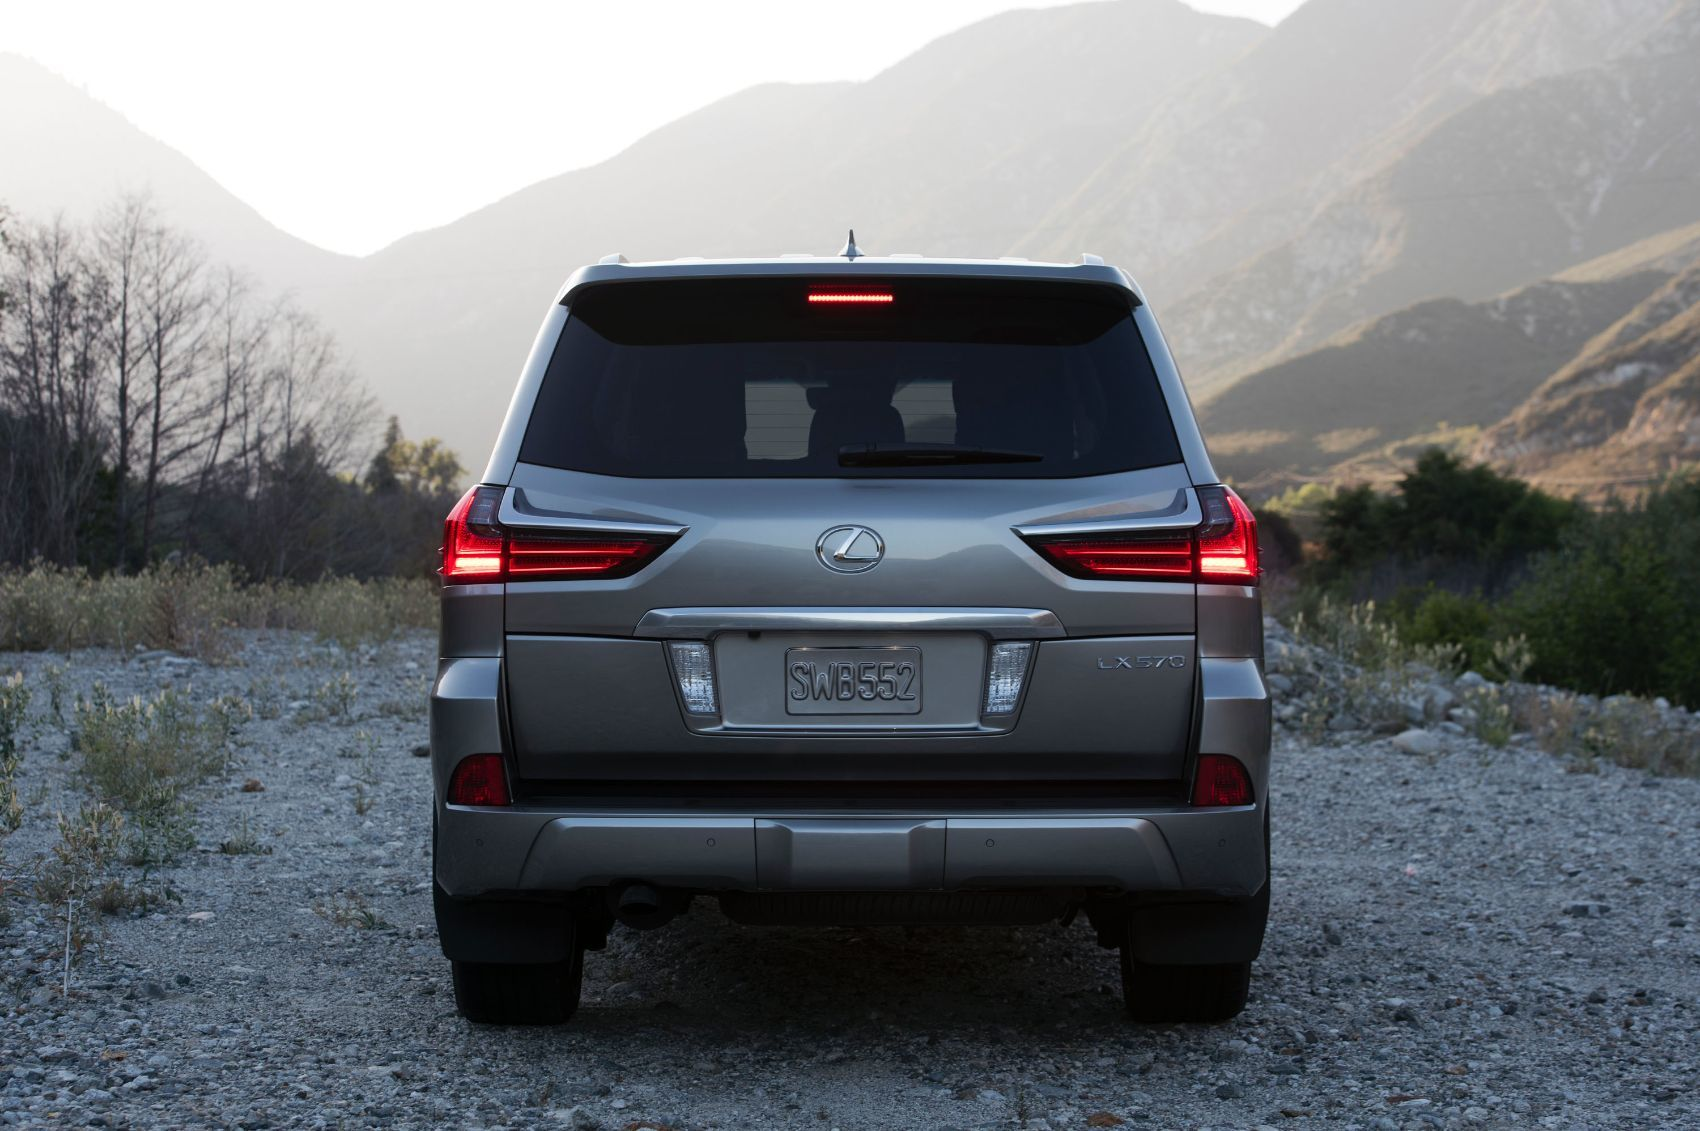 2019 Lexus LX 570 Two-Row Review: Powerful & Luxurious But ...